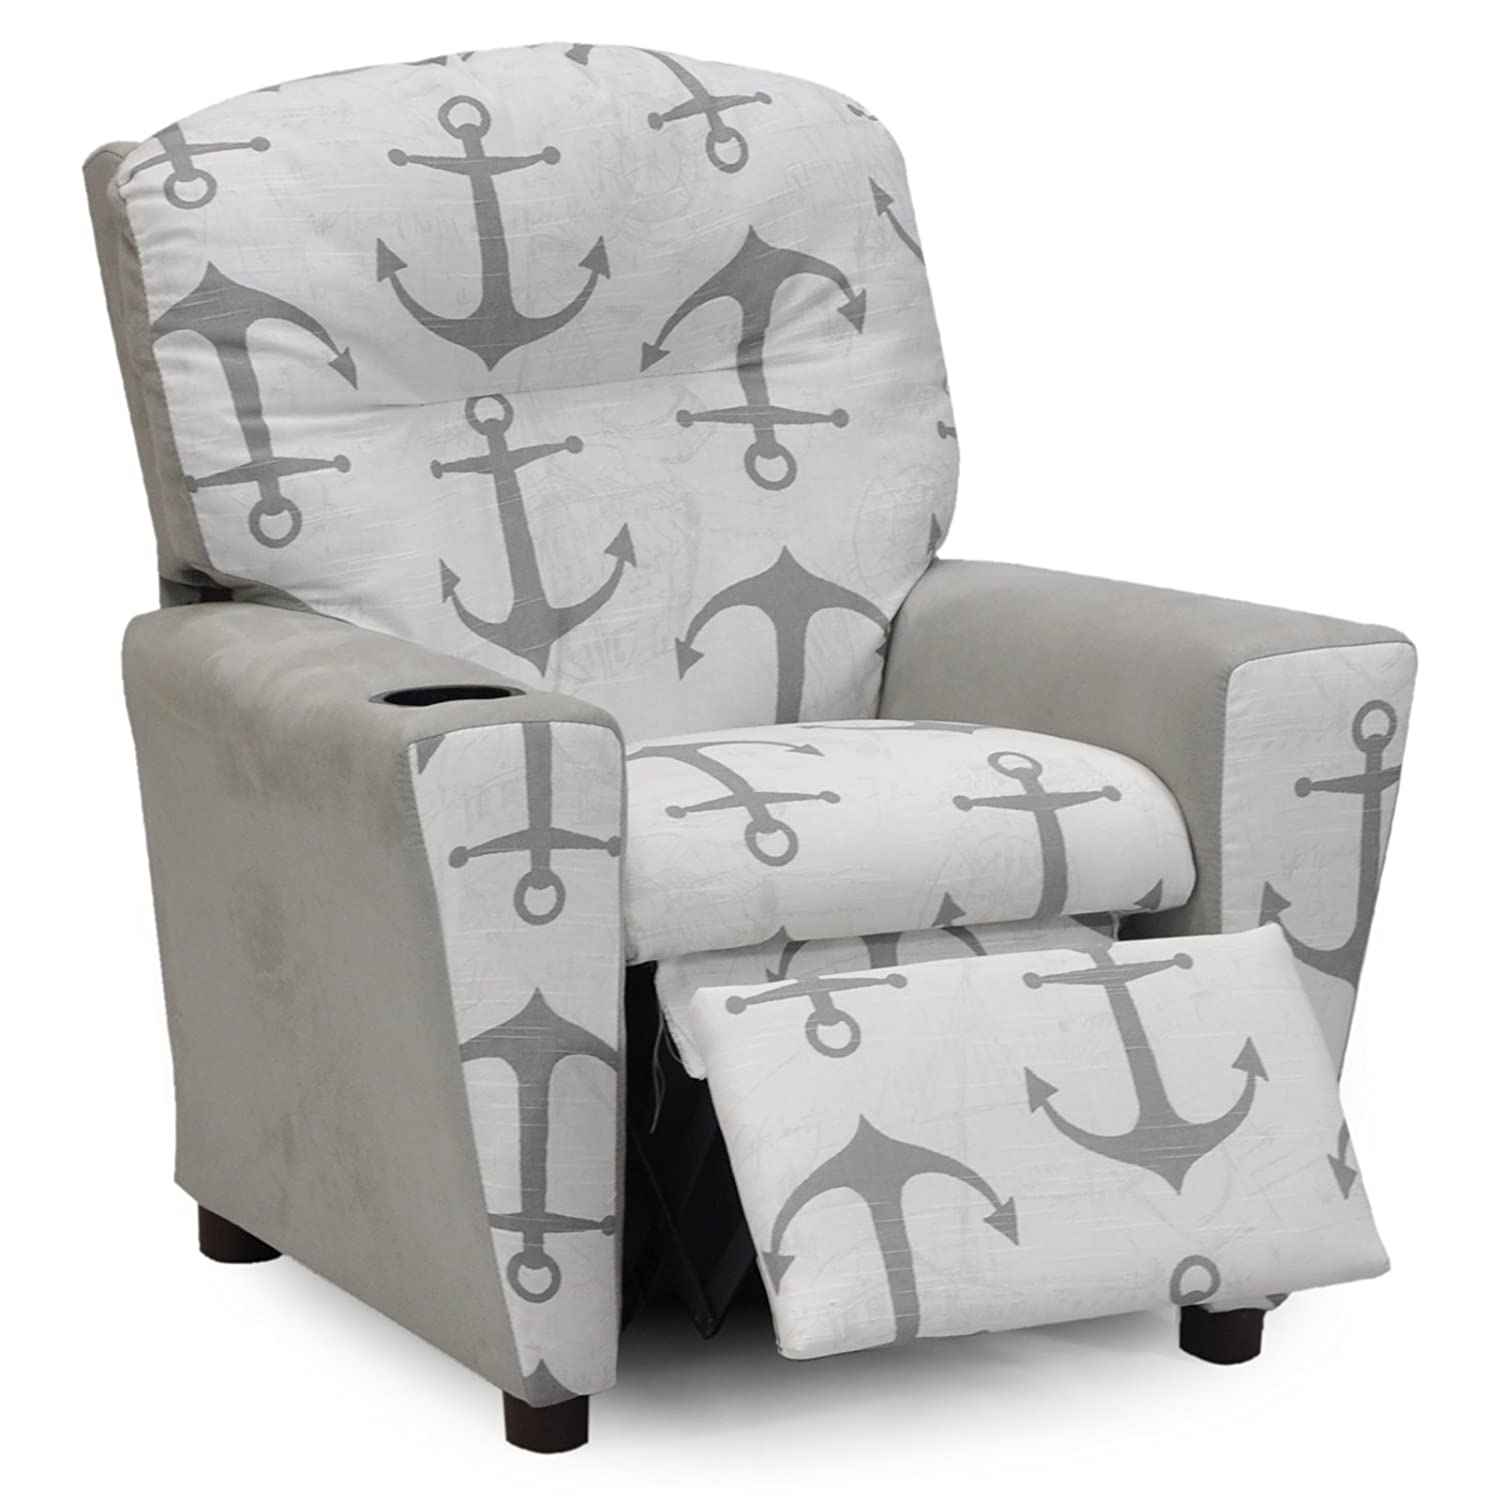 Amazon Kidz World Anchors Navy Kid s Recliner with Cup Holder